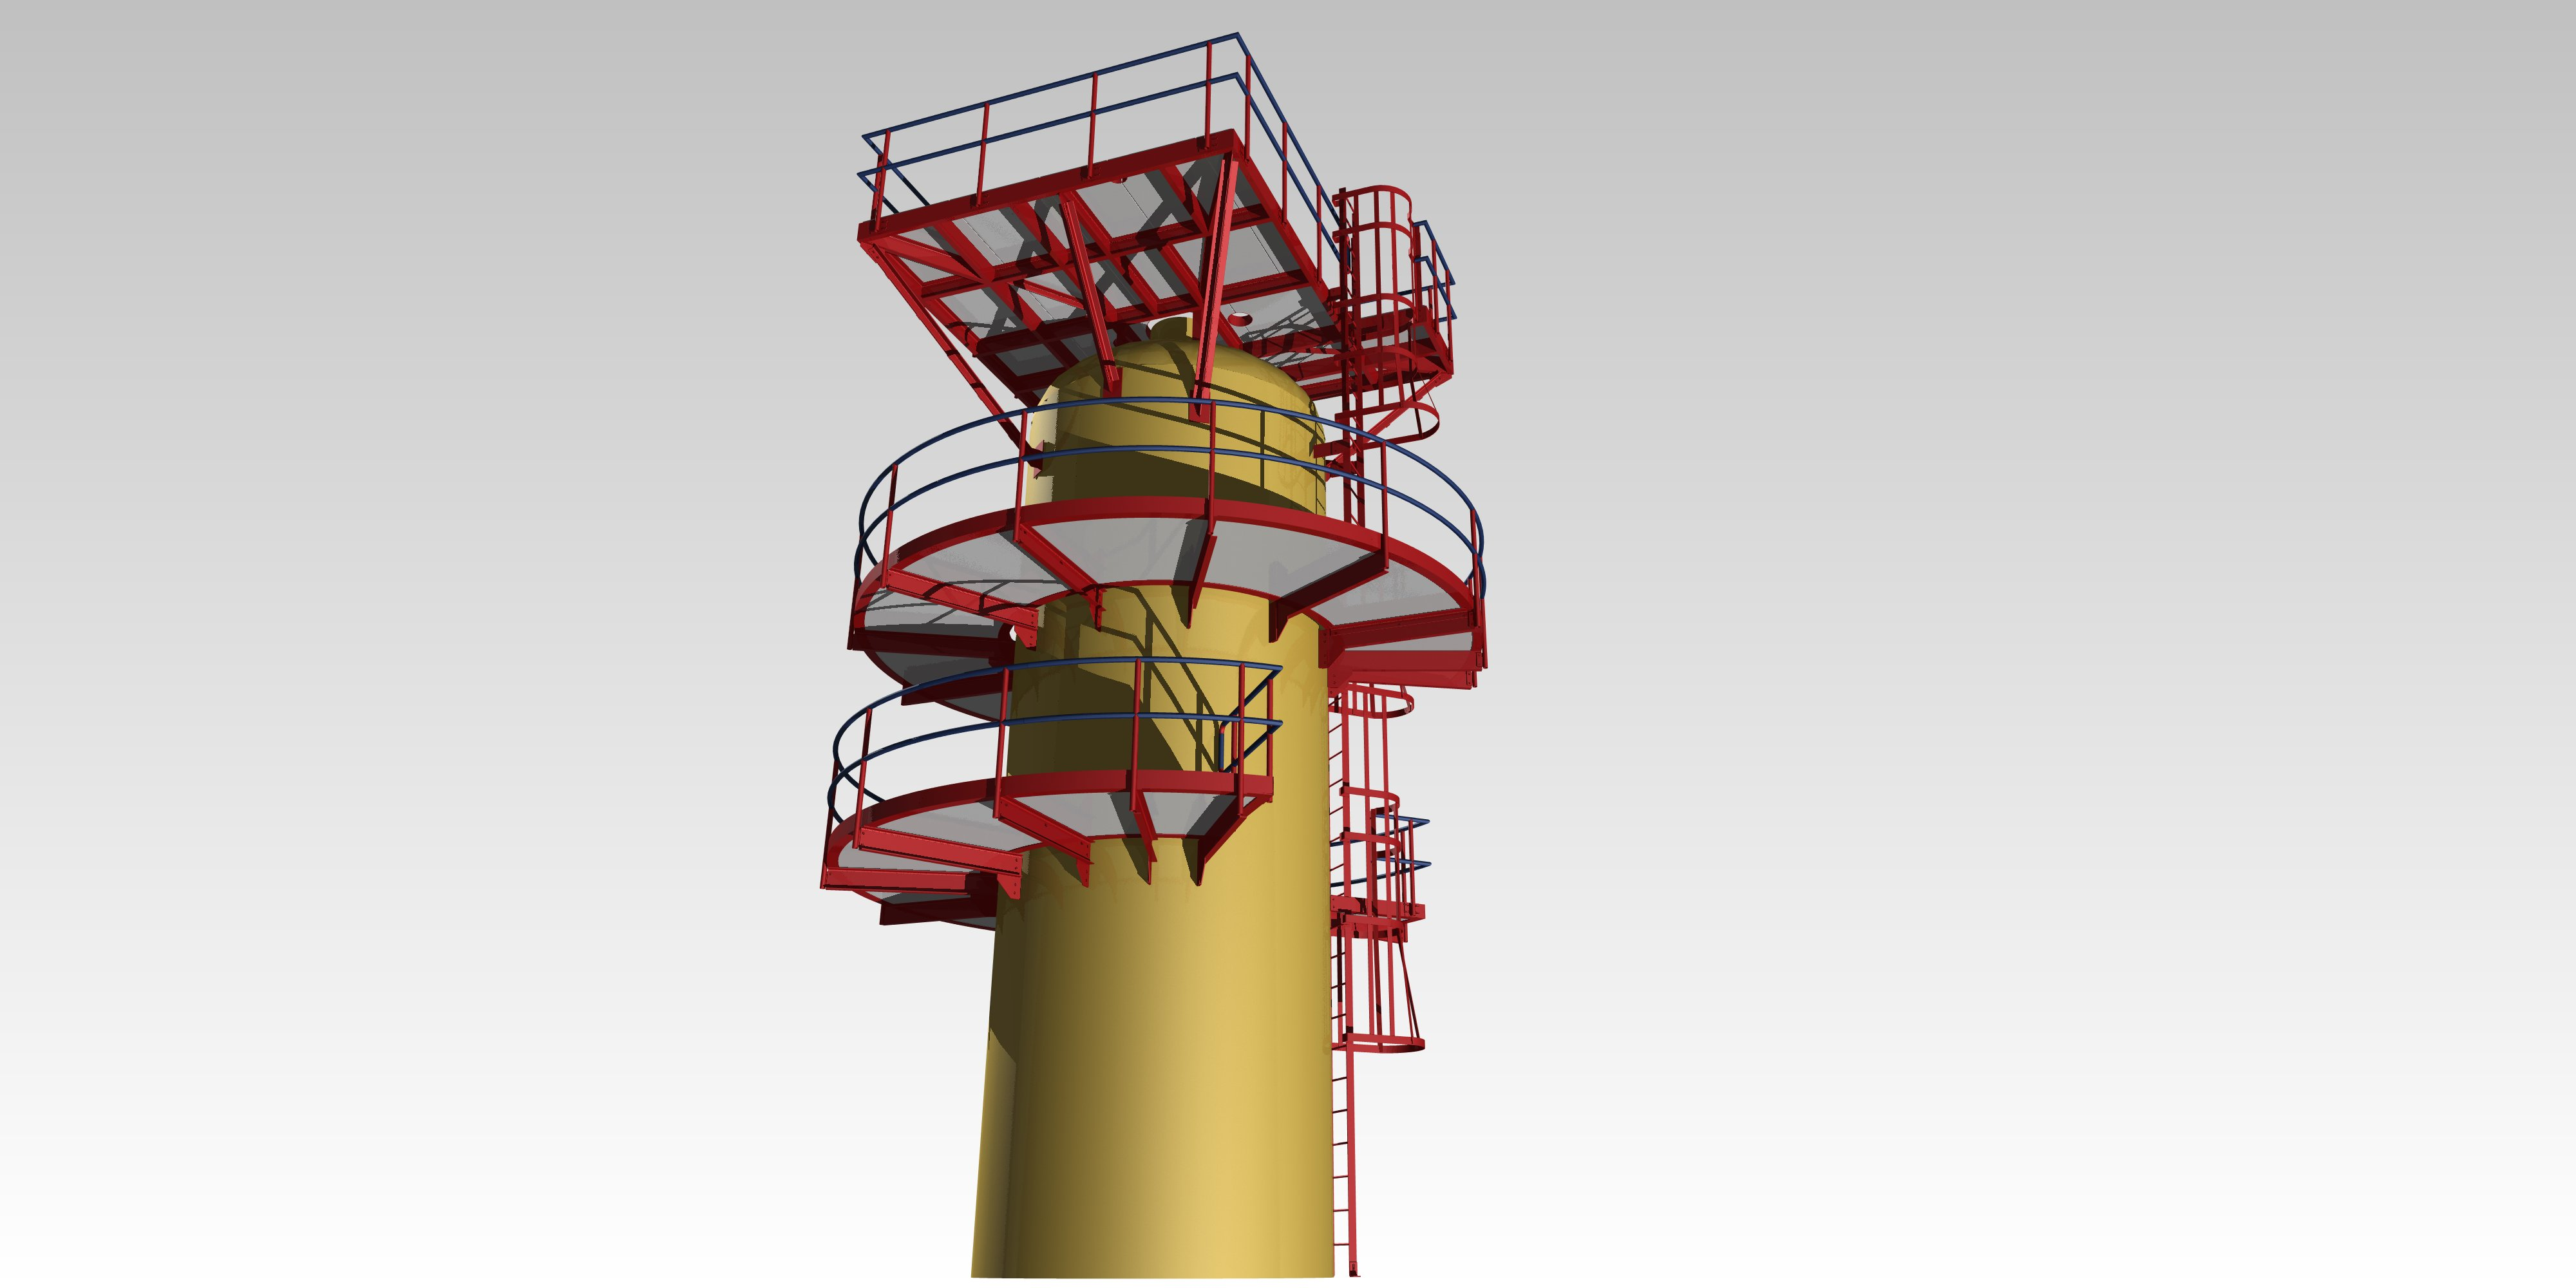 Circular platform detailing silo - The Engineering Design